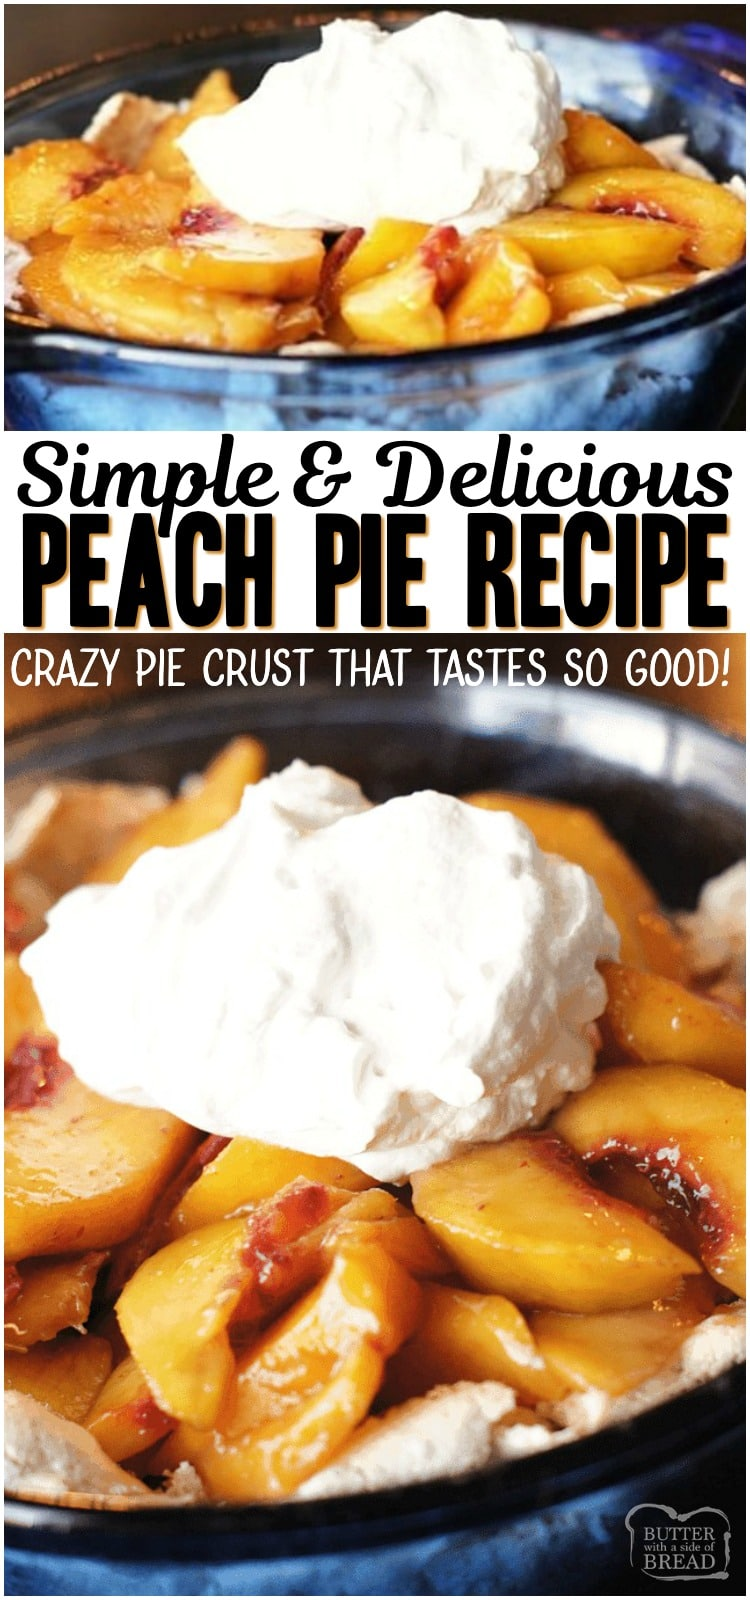 Easy Peach Pieis one of my favorite recipes for fresh peaches! Our simple recipe for pie crust will blow your mind- can you believe that secret ingredient?! Try it and you'll see just how delicious it is. #pie #peaches #peach #piecrust #baking #recipe #dessert from BUTTER WITH A SIDE OF BREAD